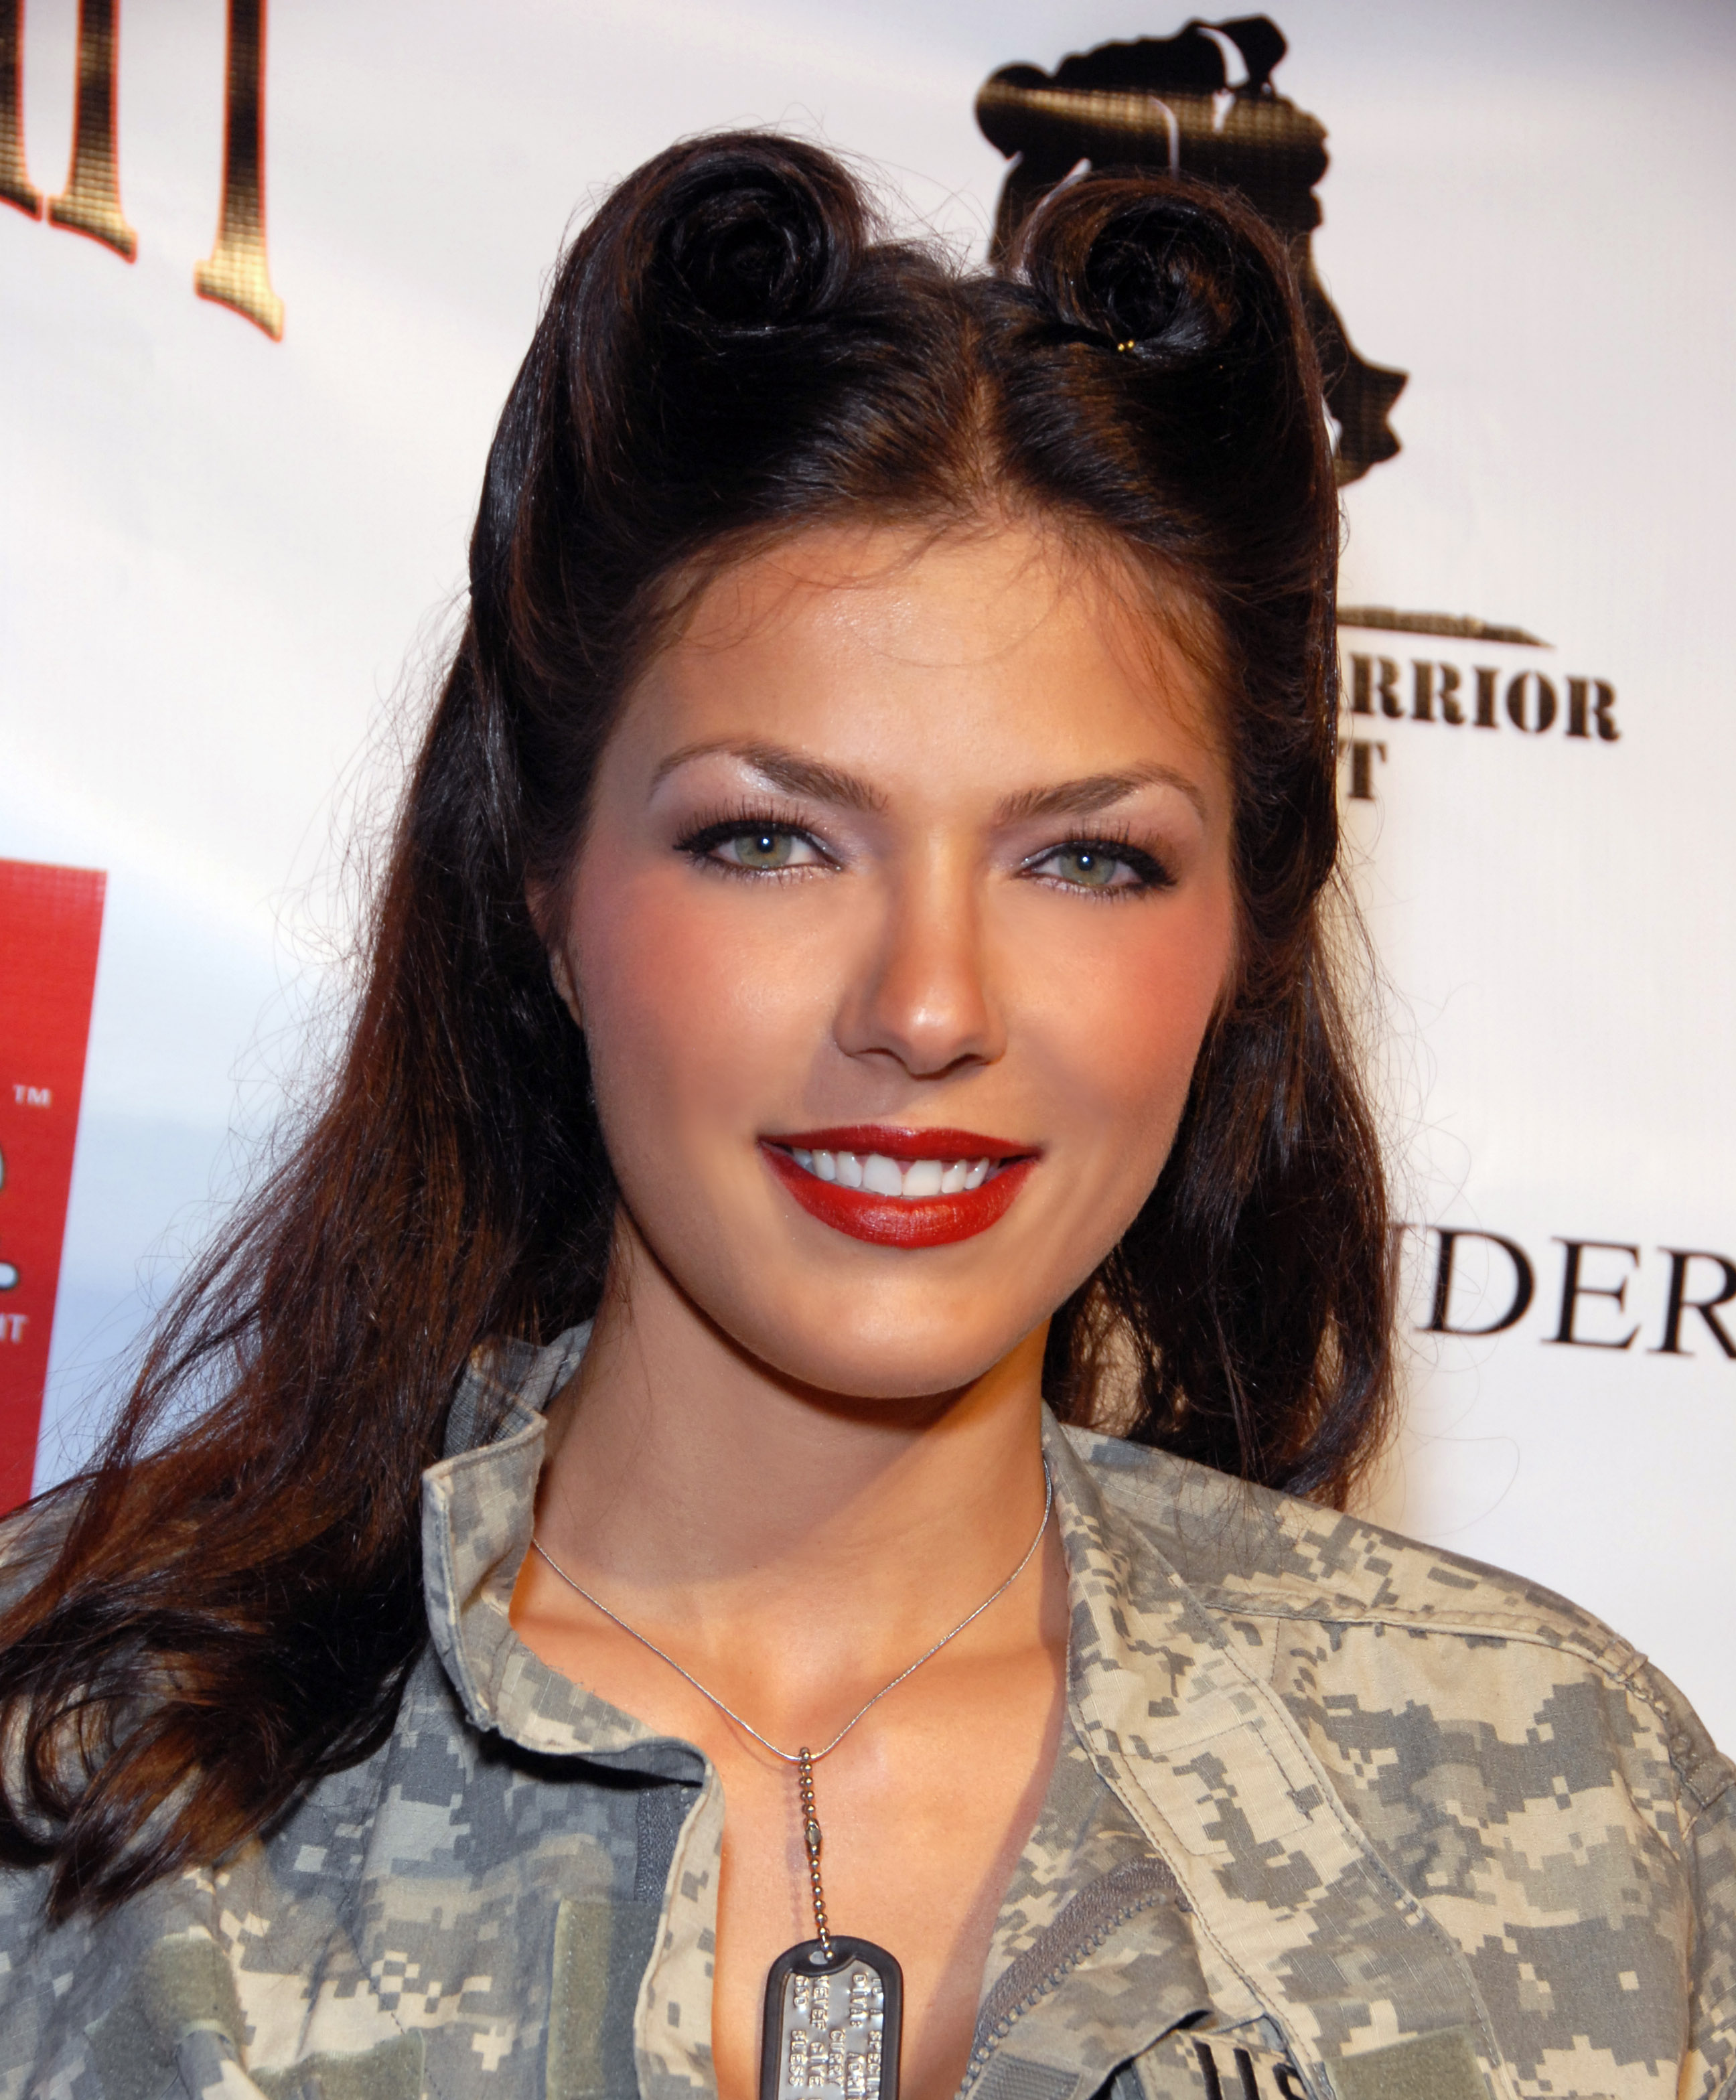 File:ADRIANNE CURRY 2009.jpg - Wikimedia Commons